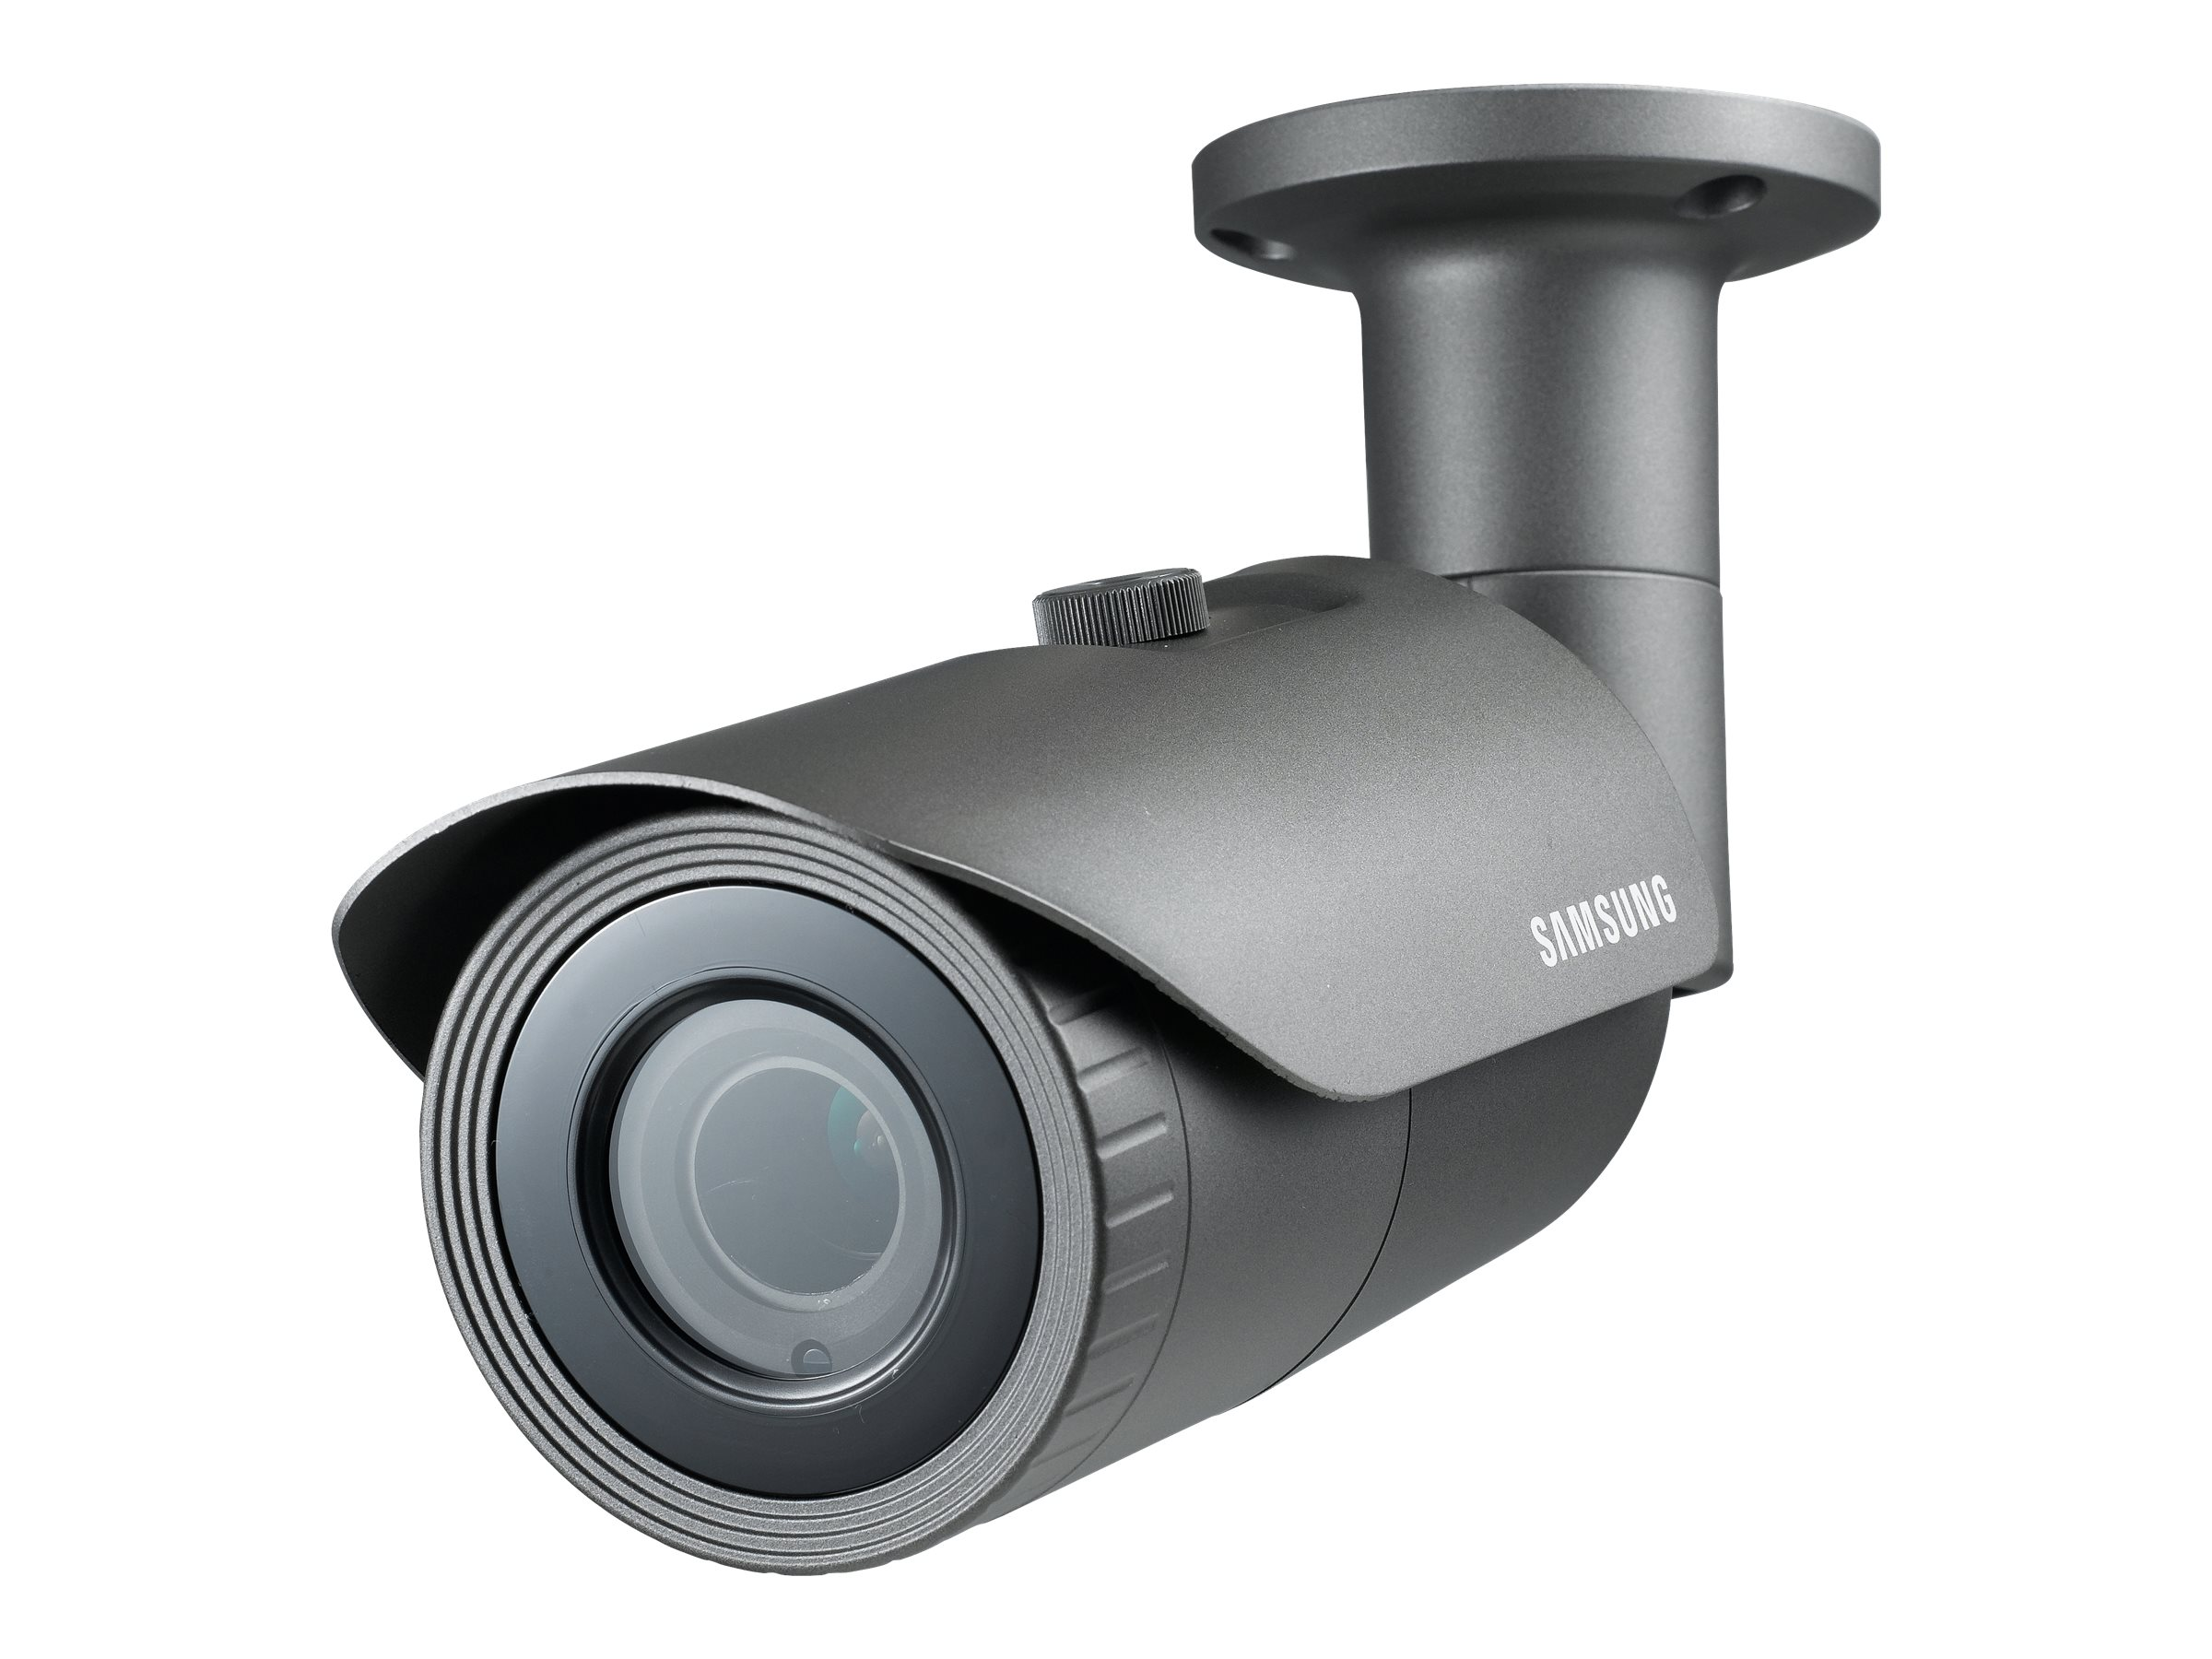 Samsung 1000TVL Premium Resolution Weatherproof IR Camera with 3-10mm Lens, SCO-5083R, 19098554, Cameras - Security